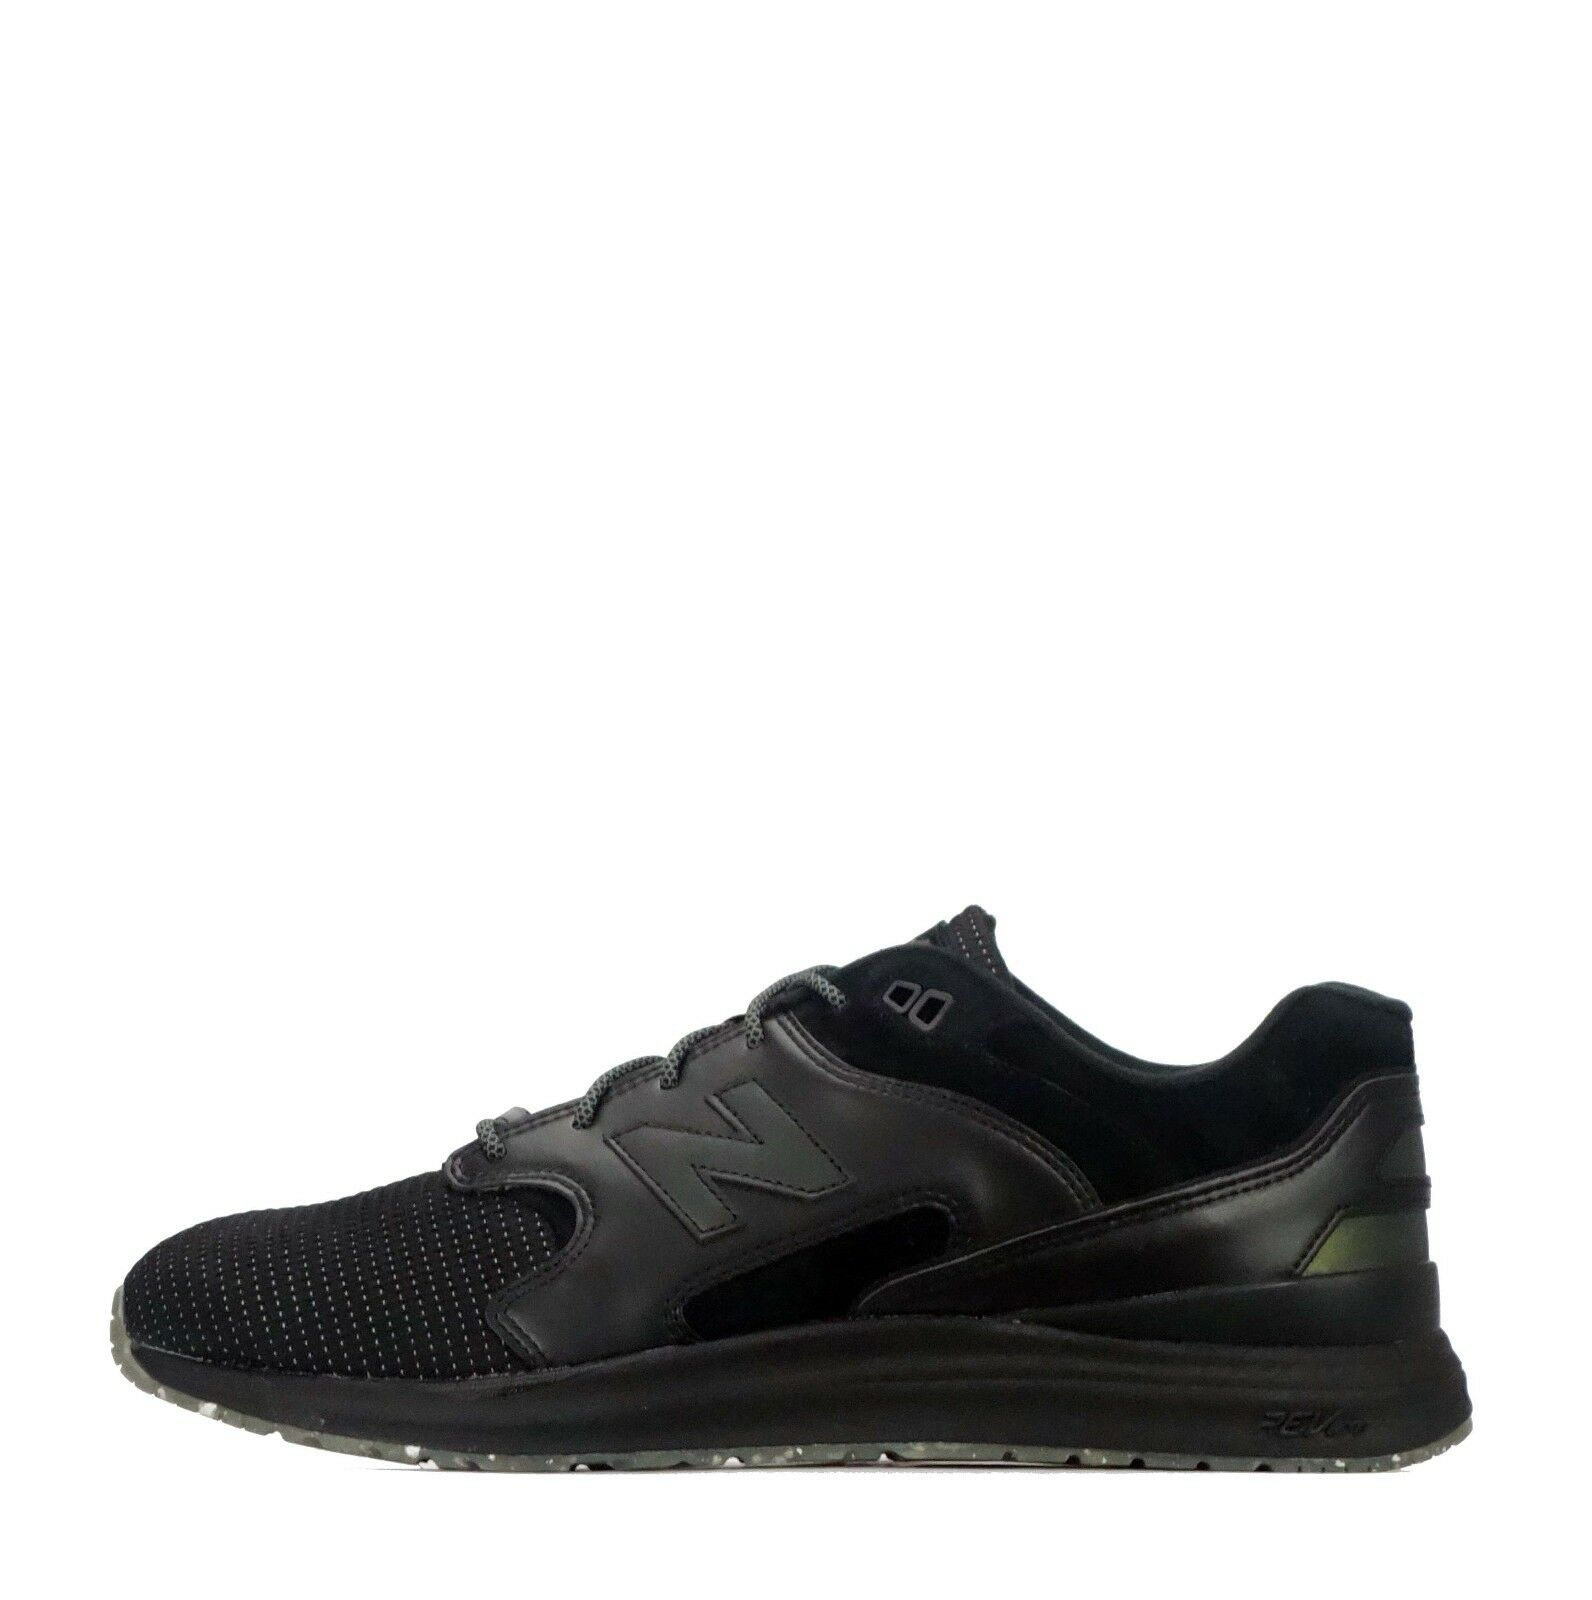 New Balance 1550 1550 1550 Men's Shoes Black/Black/Ice 62c075